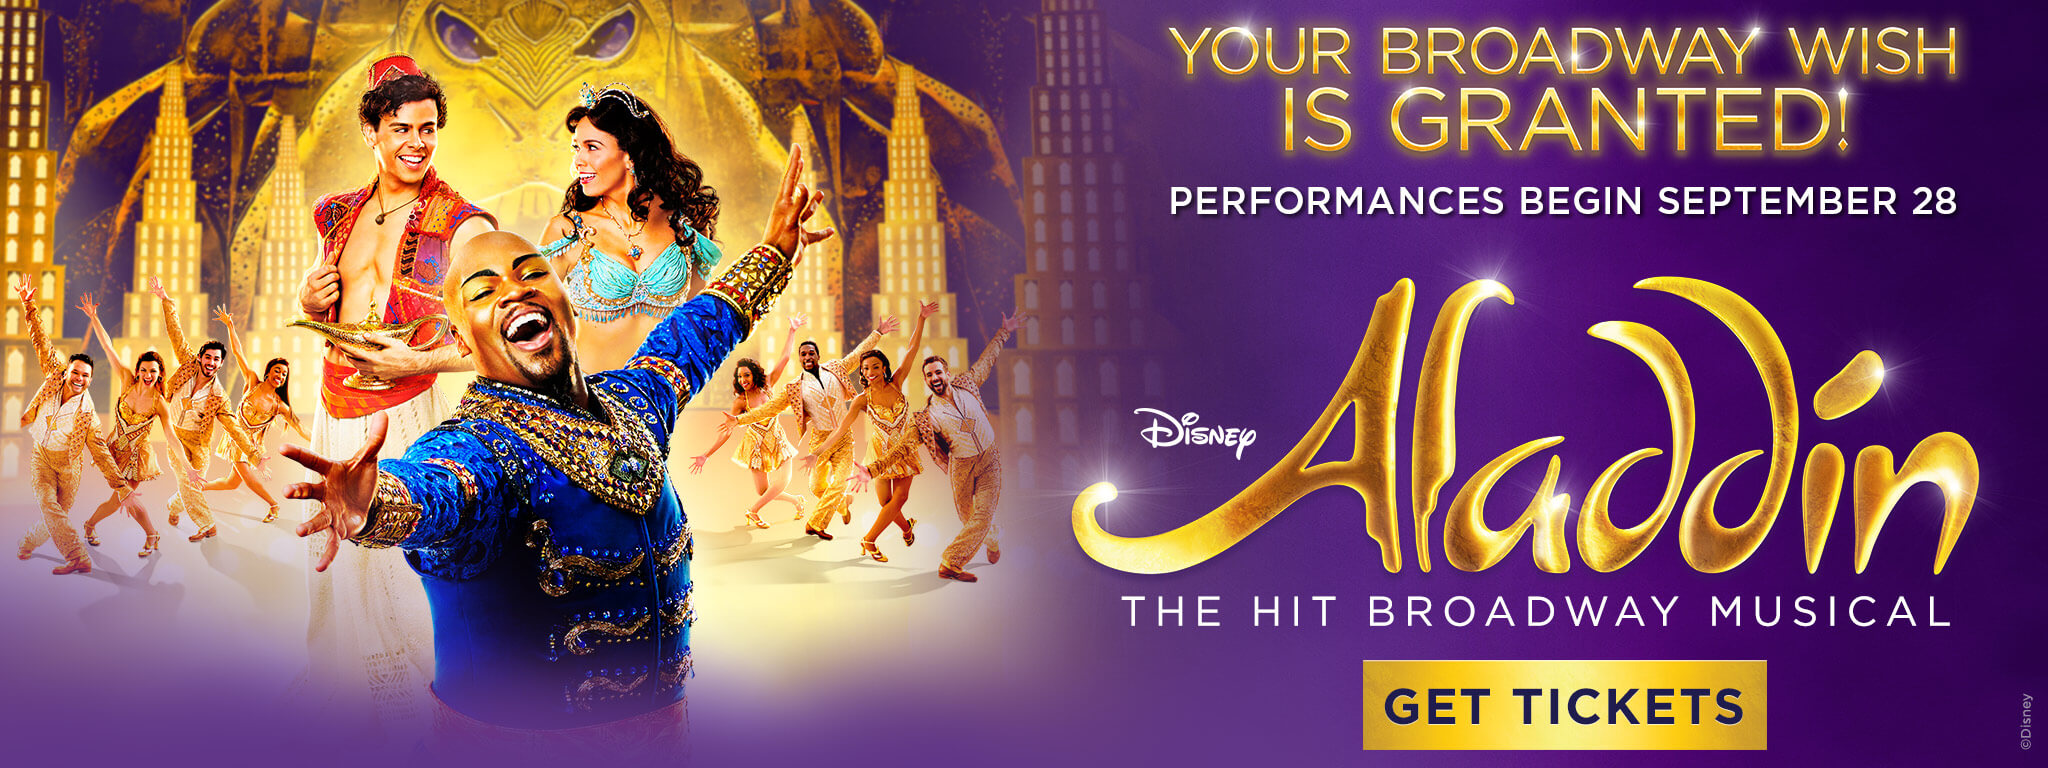 Your Broadway Wish Is Granted! Performances Begin September 28 - GET TICKETS